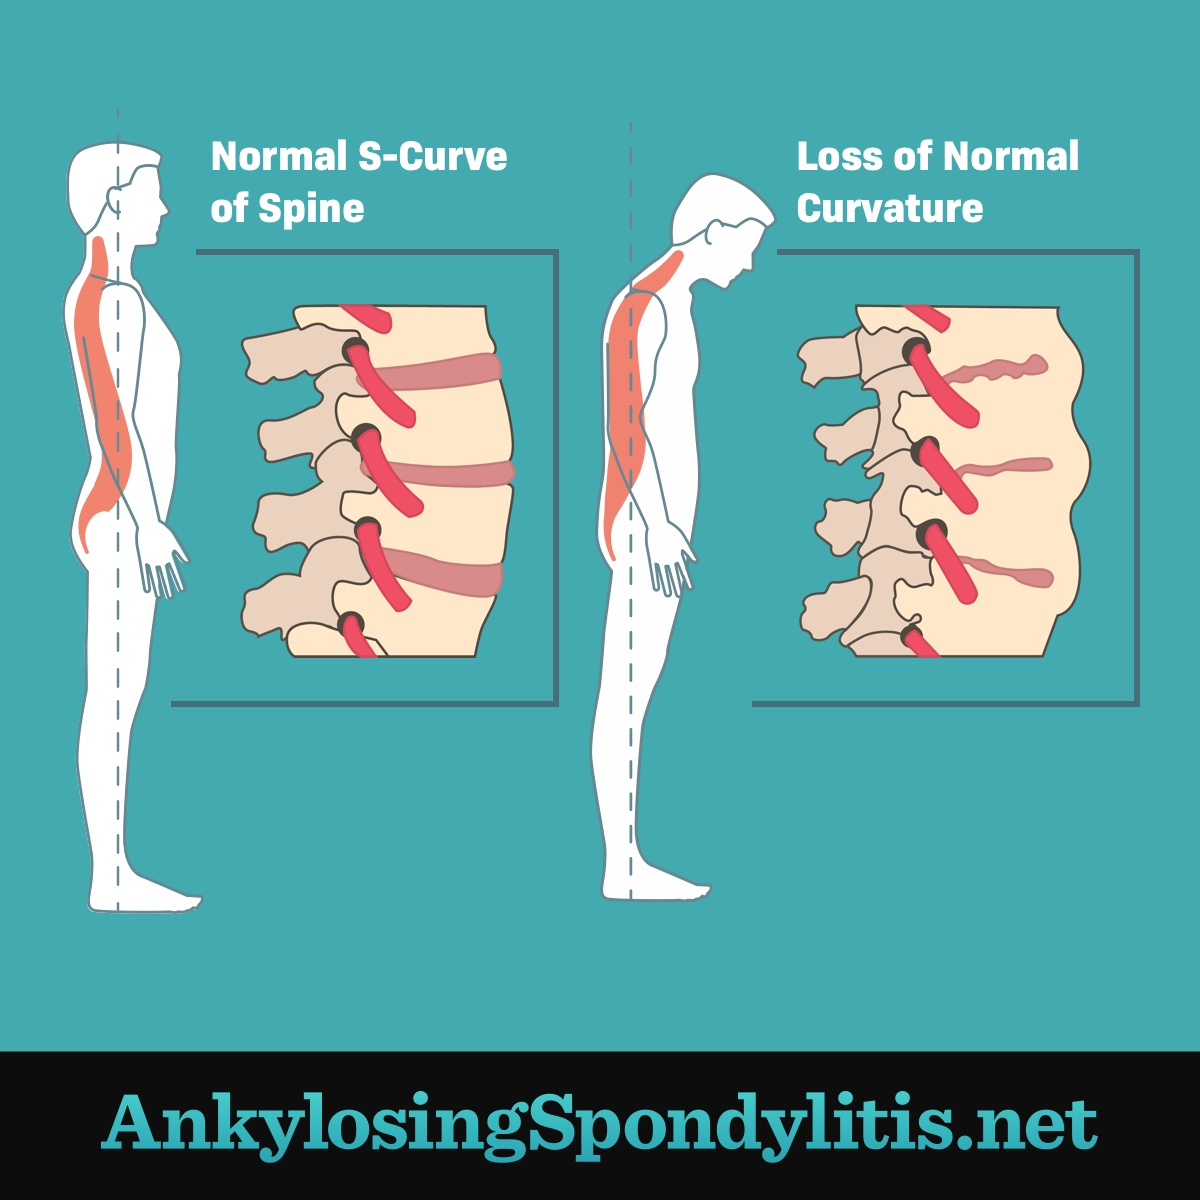 illustration of curvature loss in spine